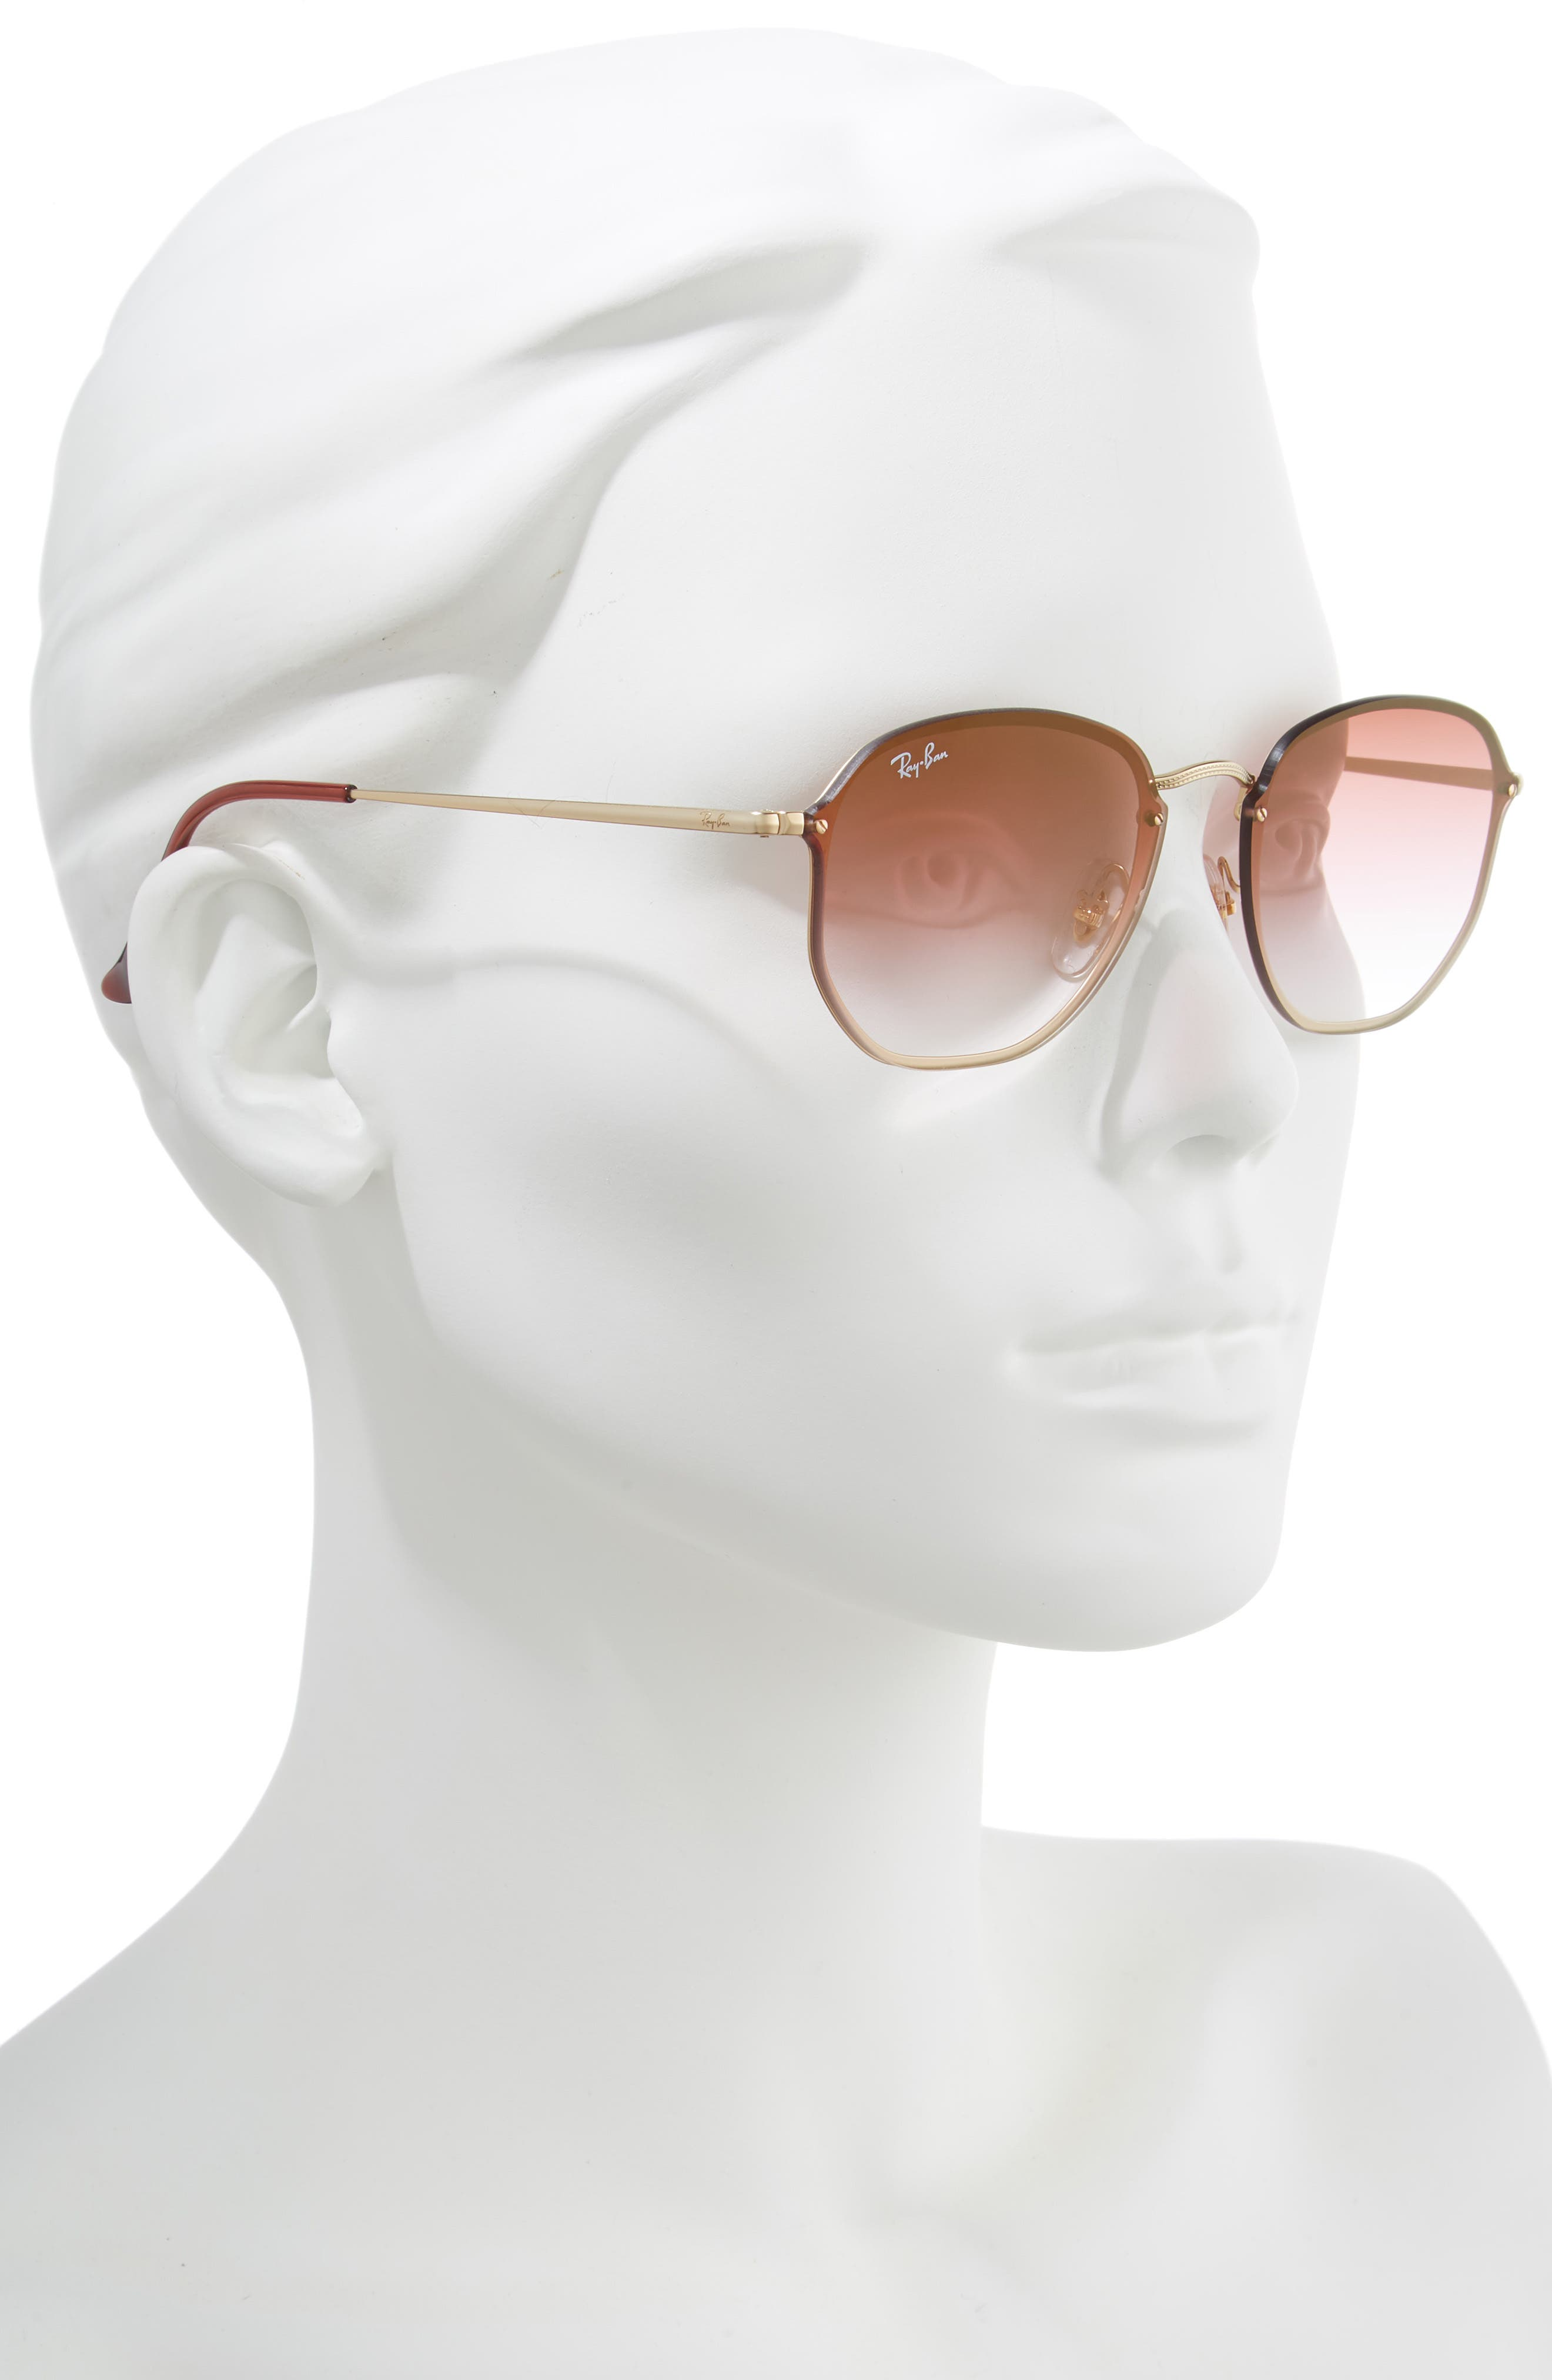 58mm Round Sunglasses,                             Alternate thumbnail 2, color,                             GOLD/ BROWN PINK GRADIENT